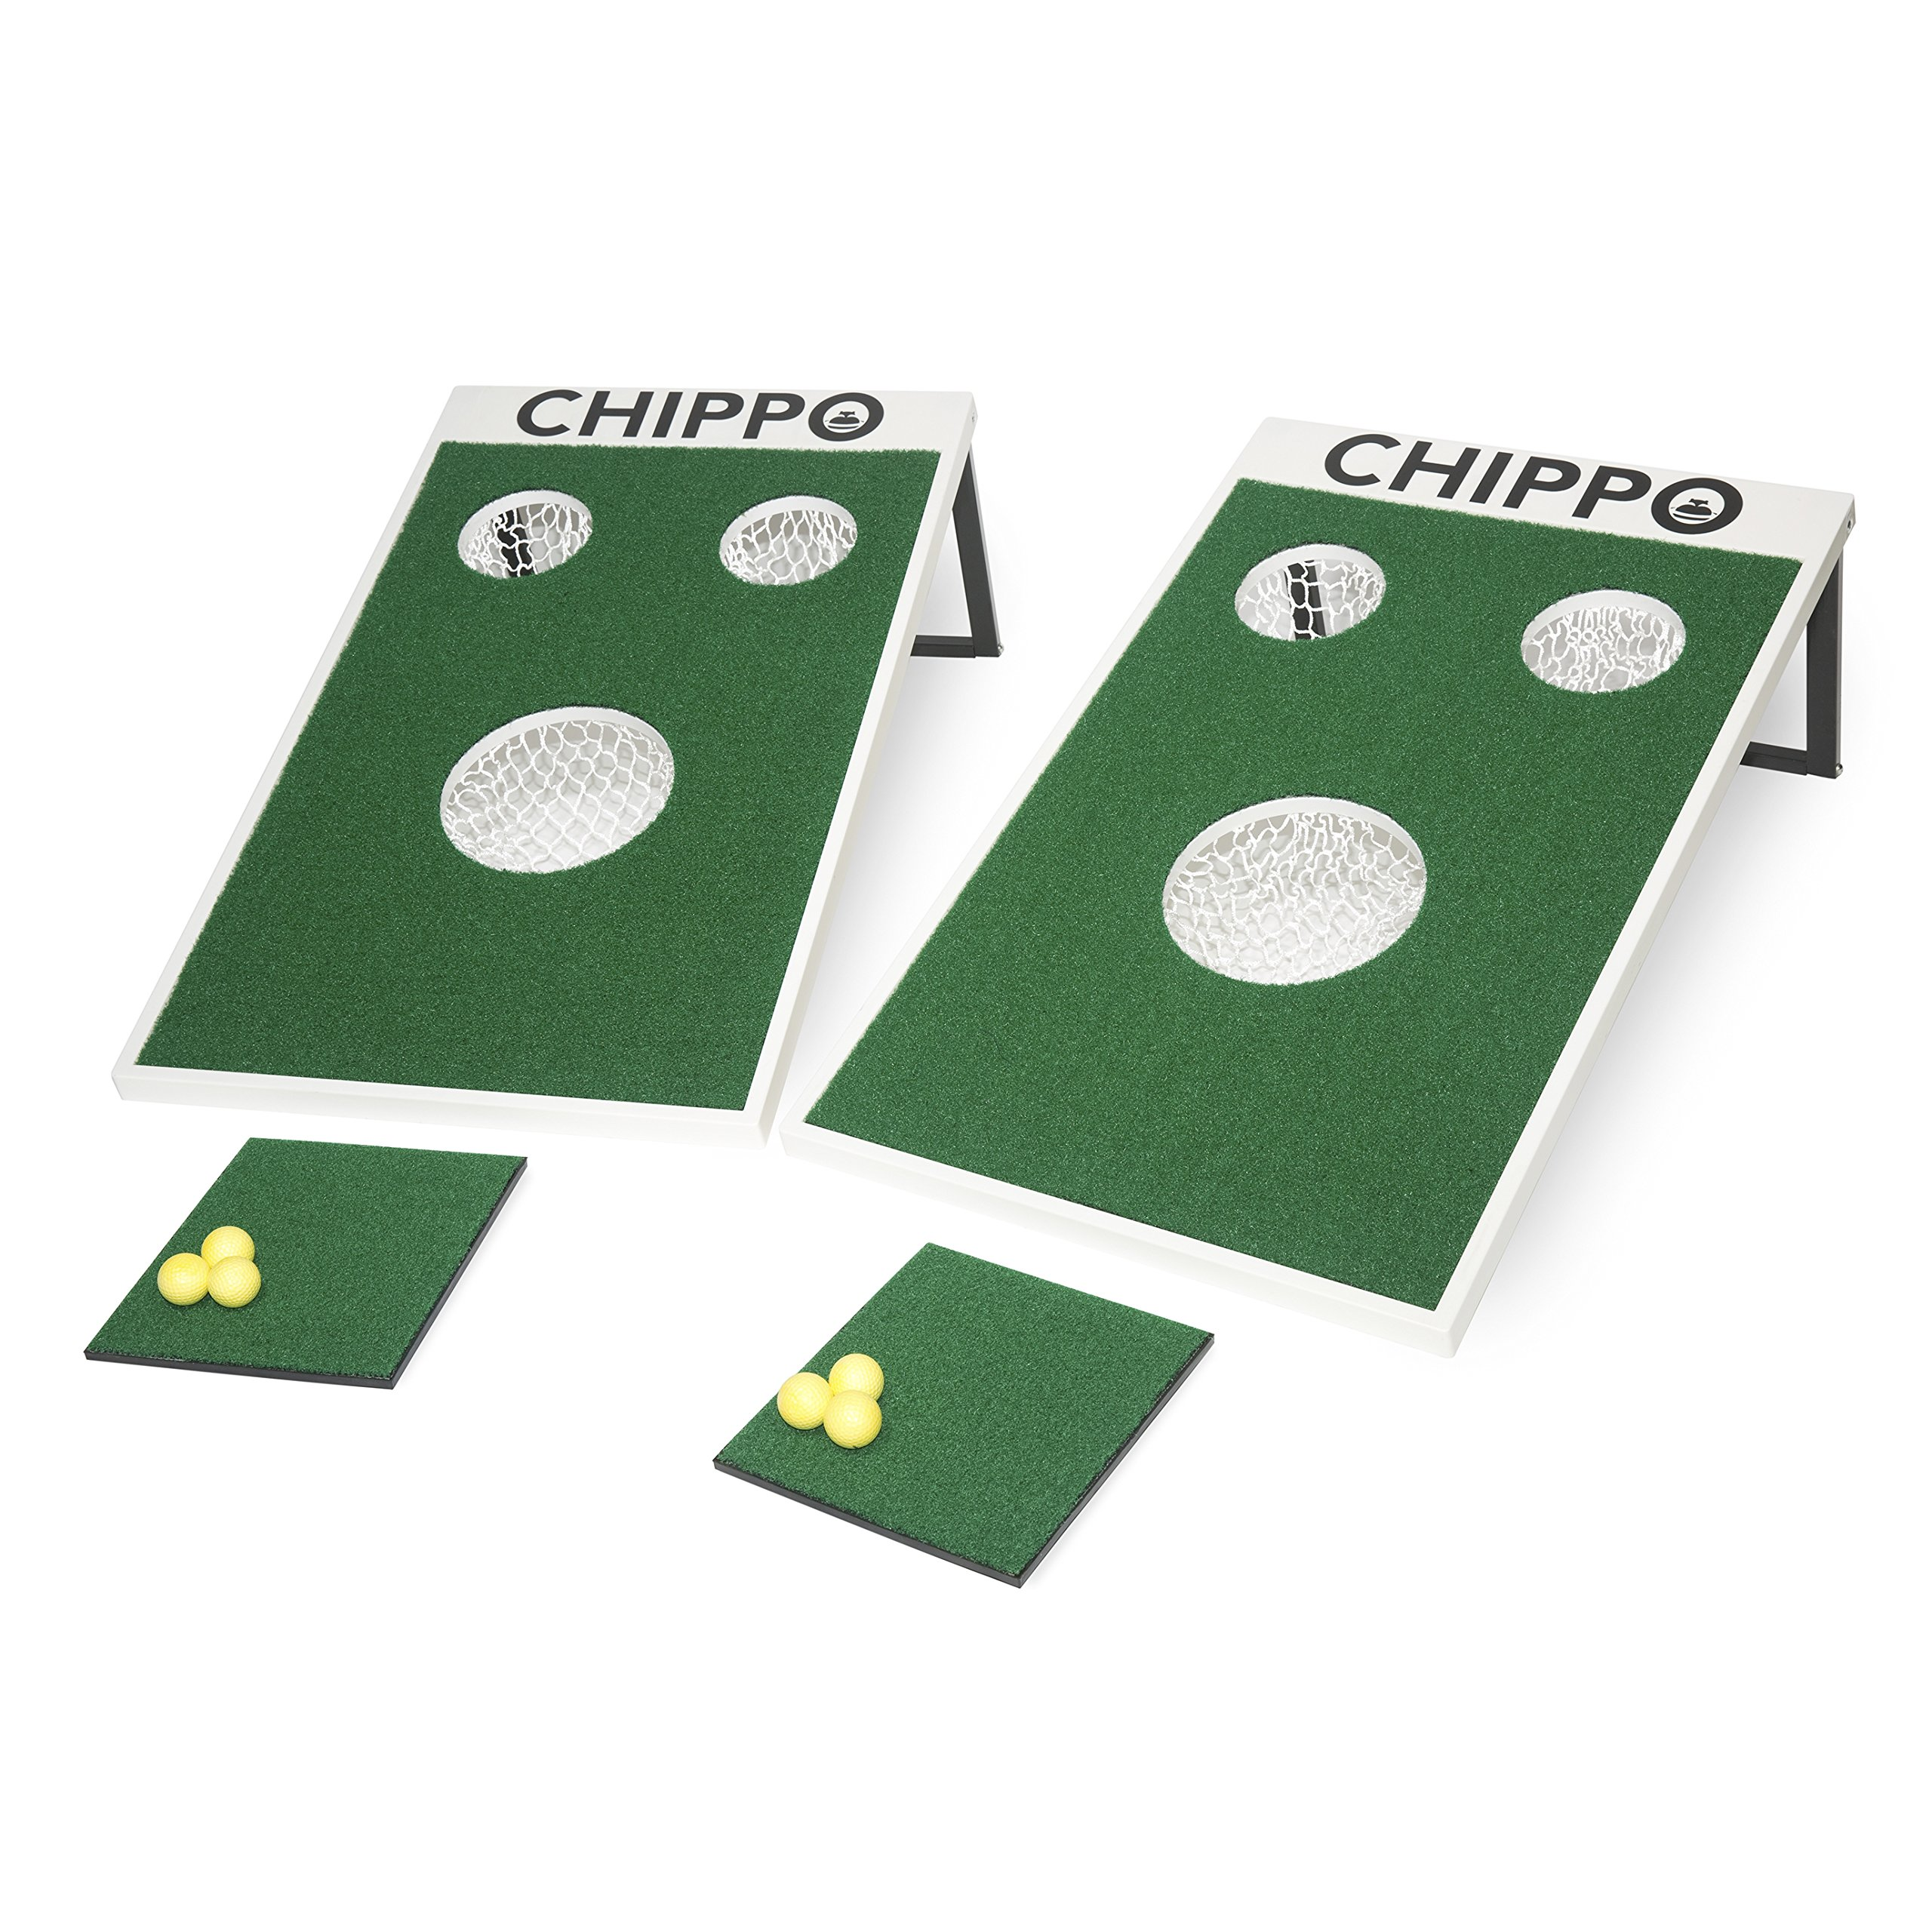 CHIPPO - Golf meets cornhole! The revolutionary new golf game for the beach, backyard, tailgate, clubhouse, office and man cave! by Chippo